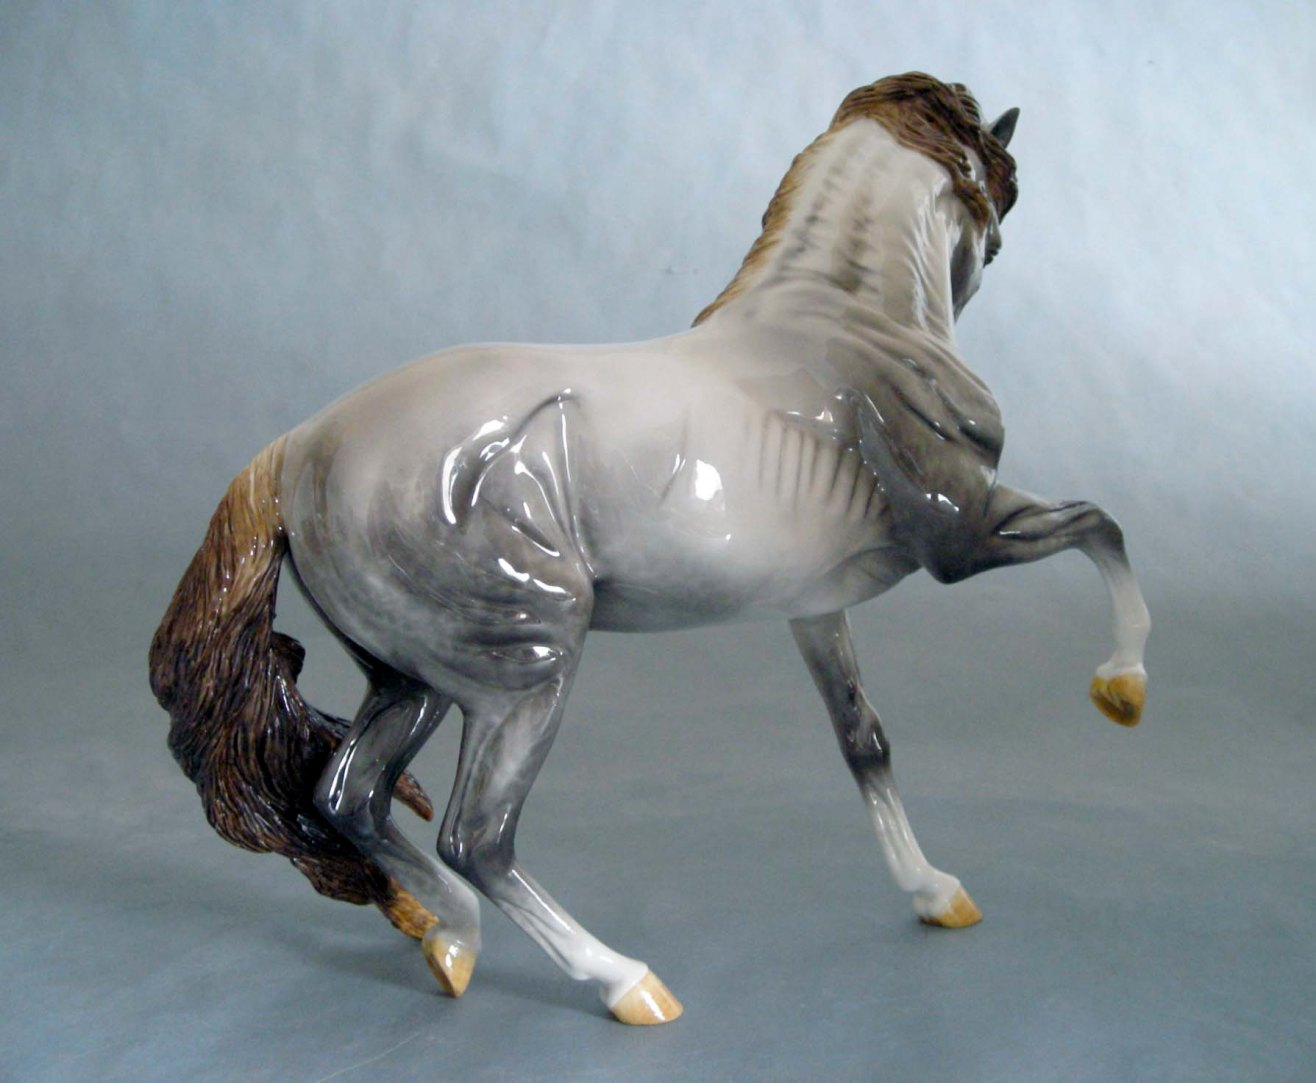 DESPERADO sculpture by Stacey Tumlinson